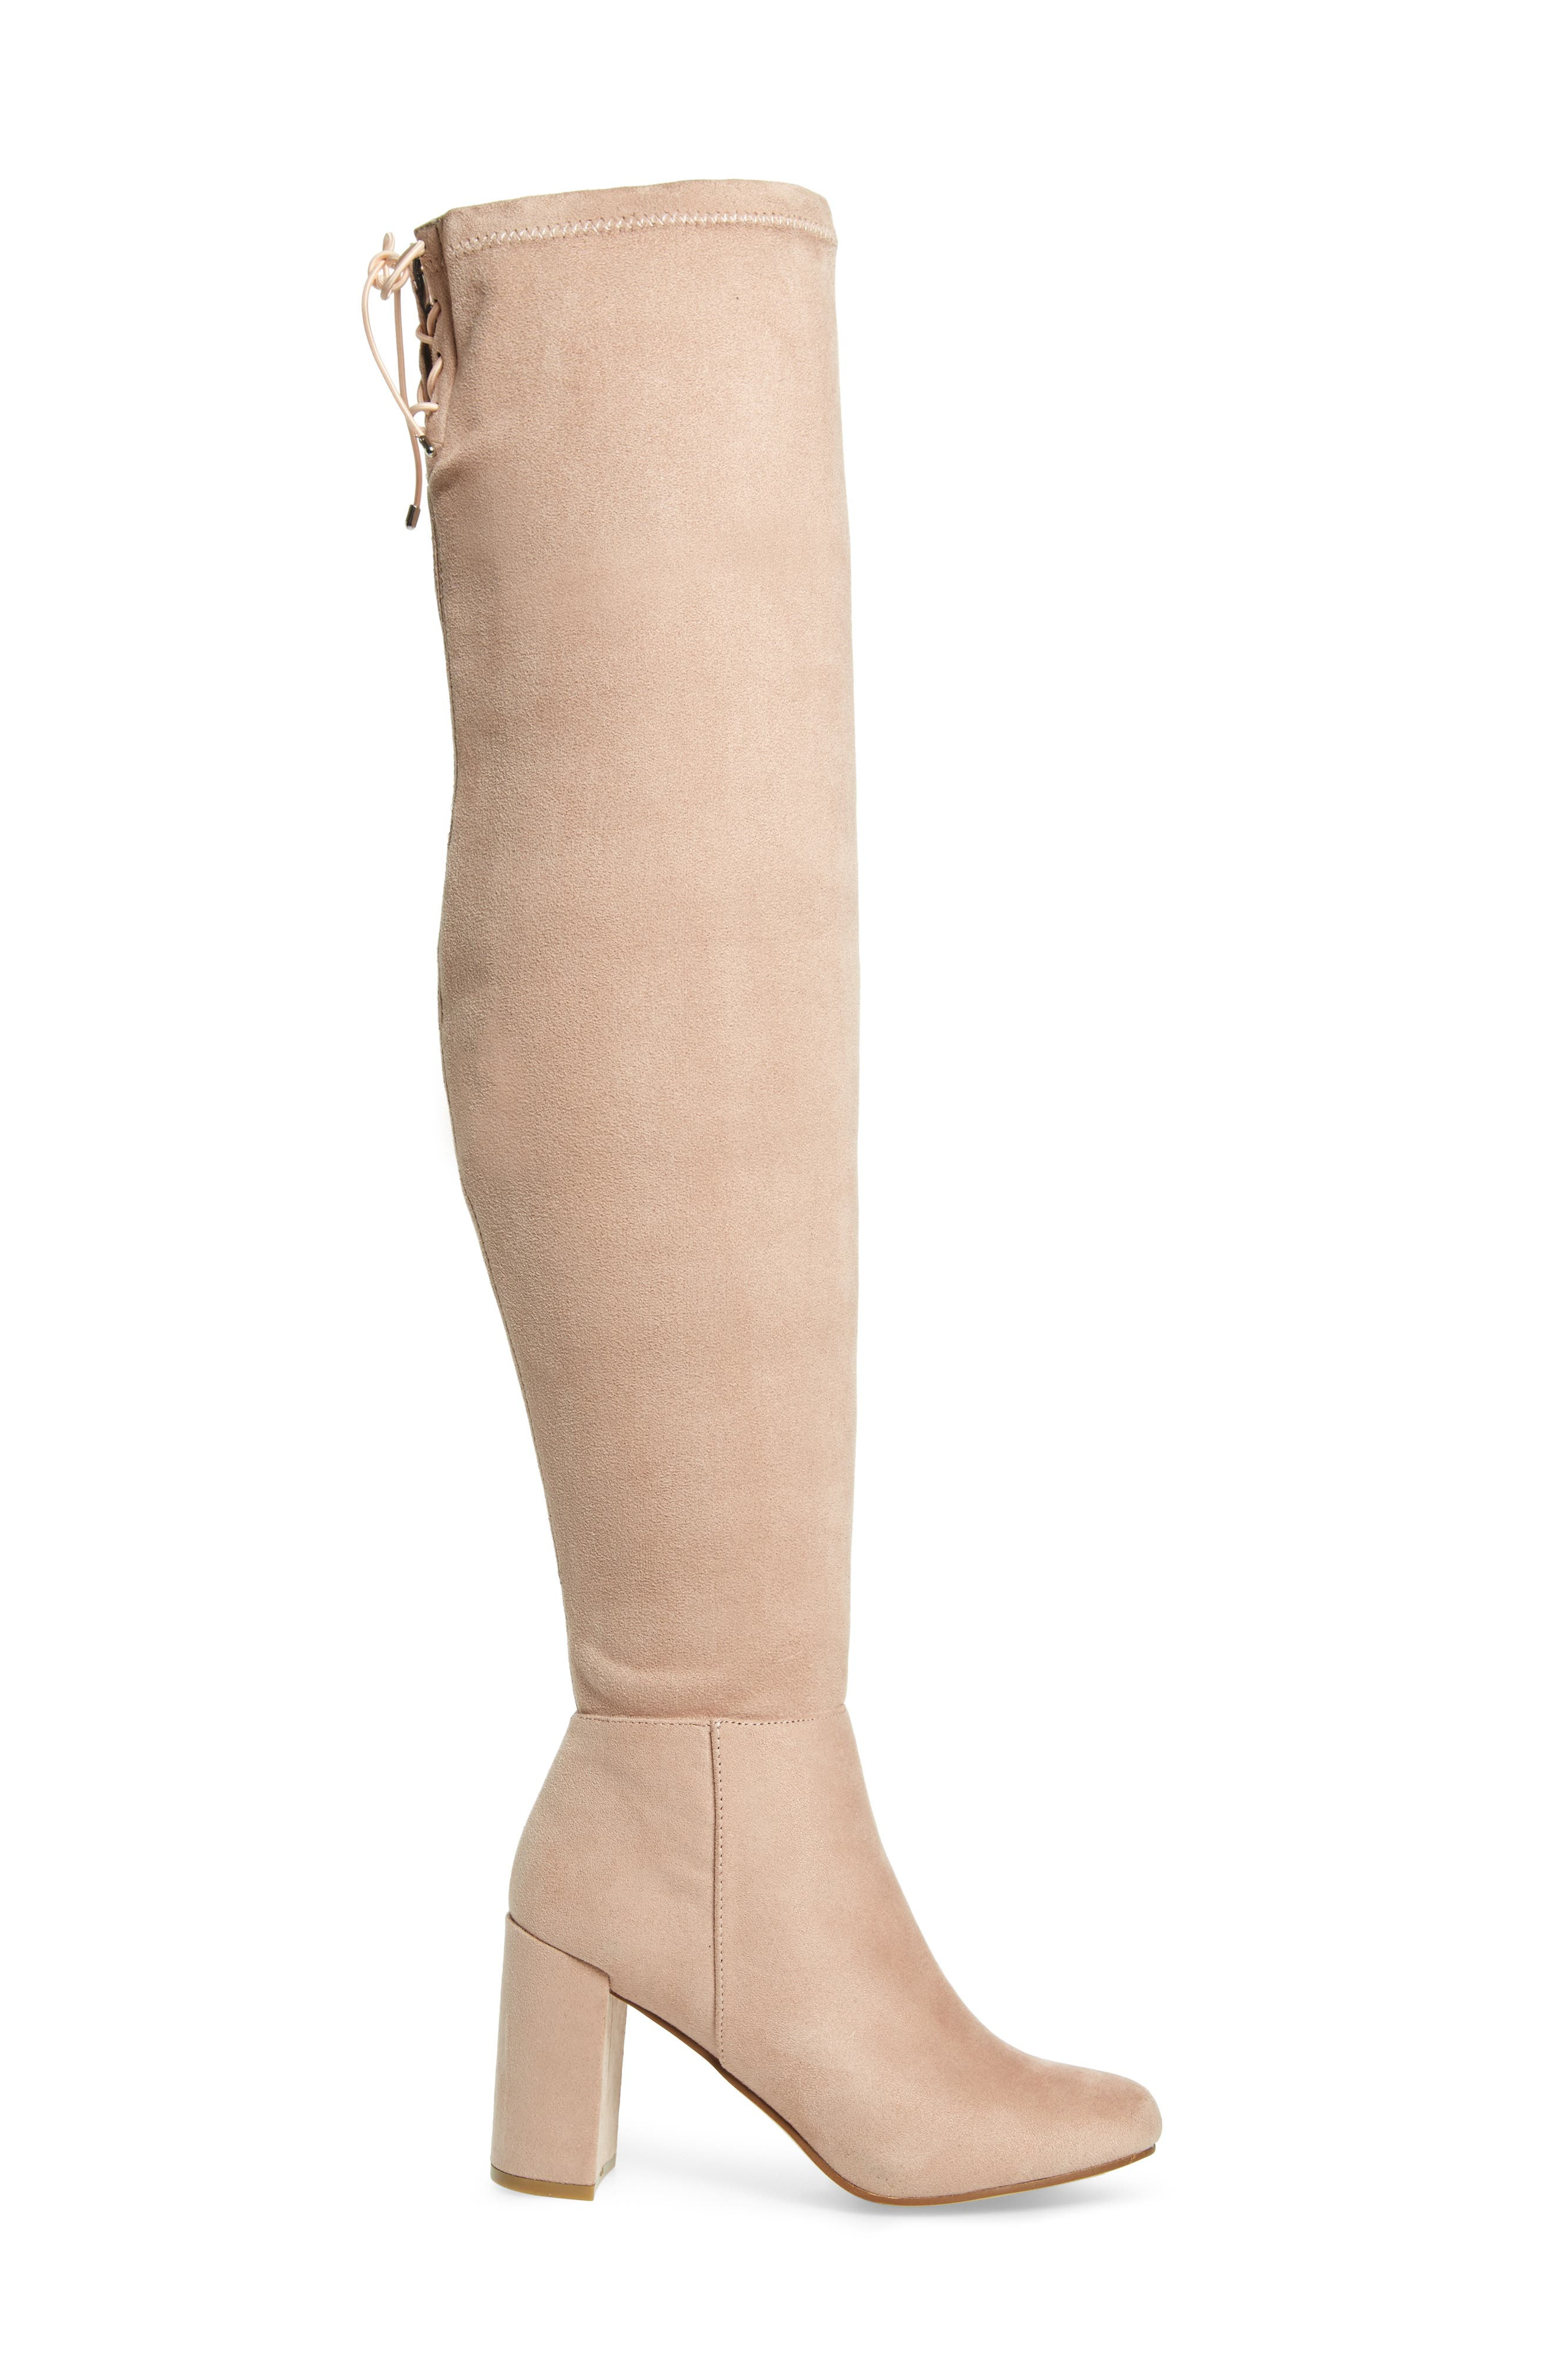 Alternate Image 3  - Chinese Laundry Krush Over the Knee Boot (Women)